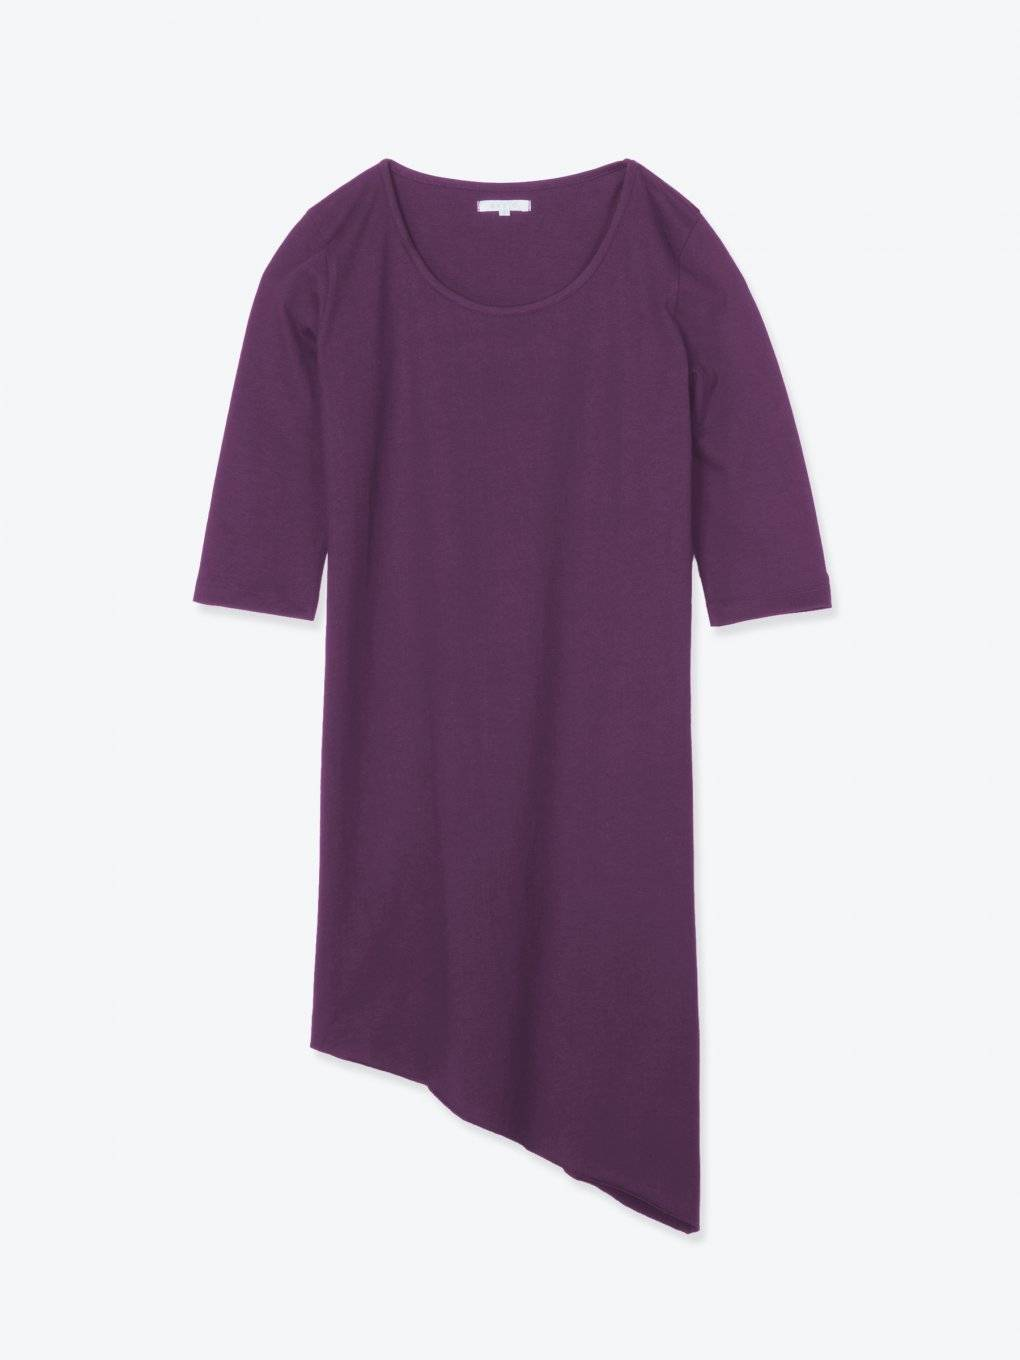 Longline t-shirt with asymmetric hem